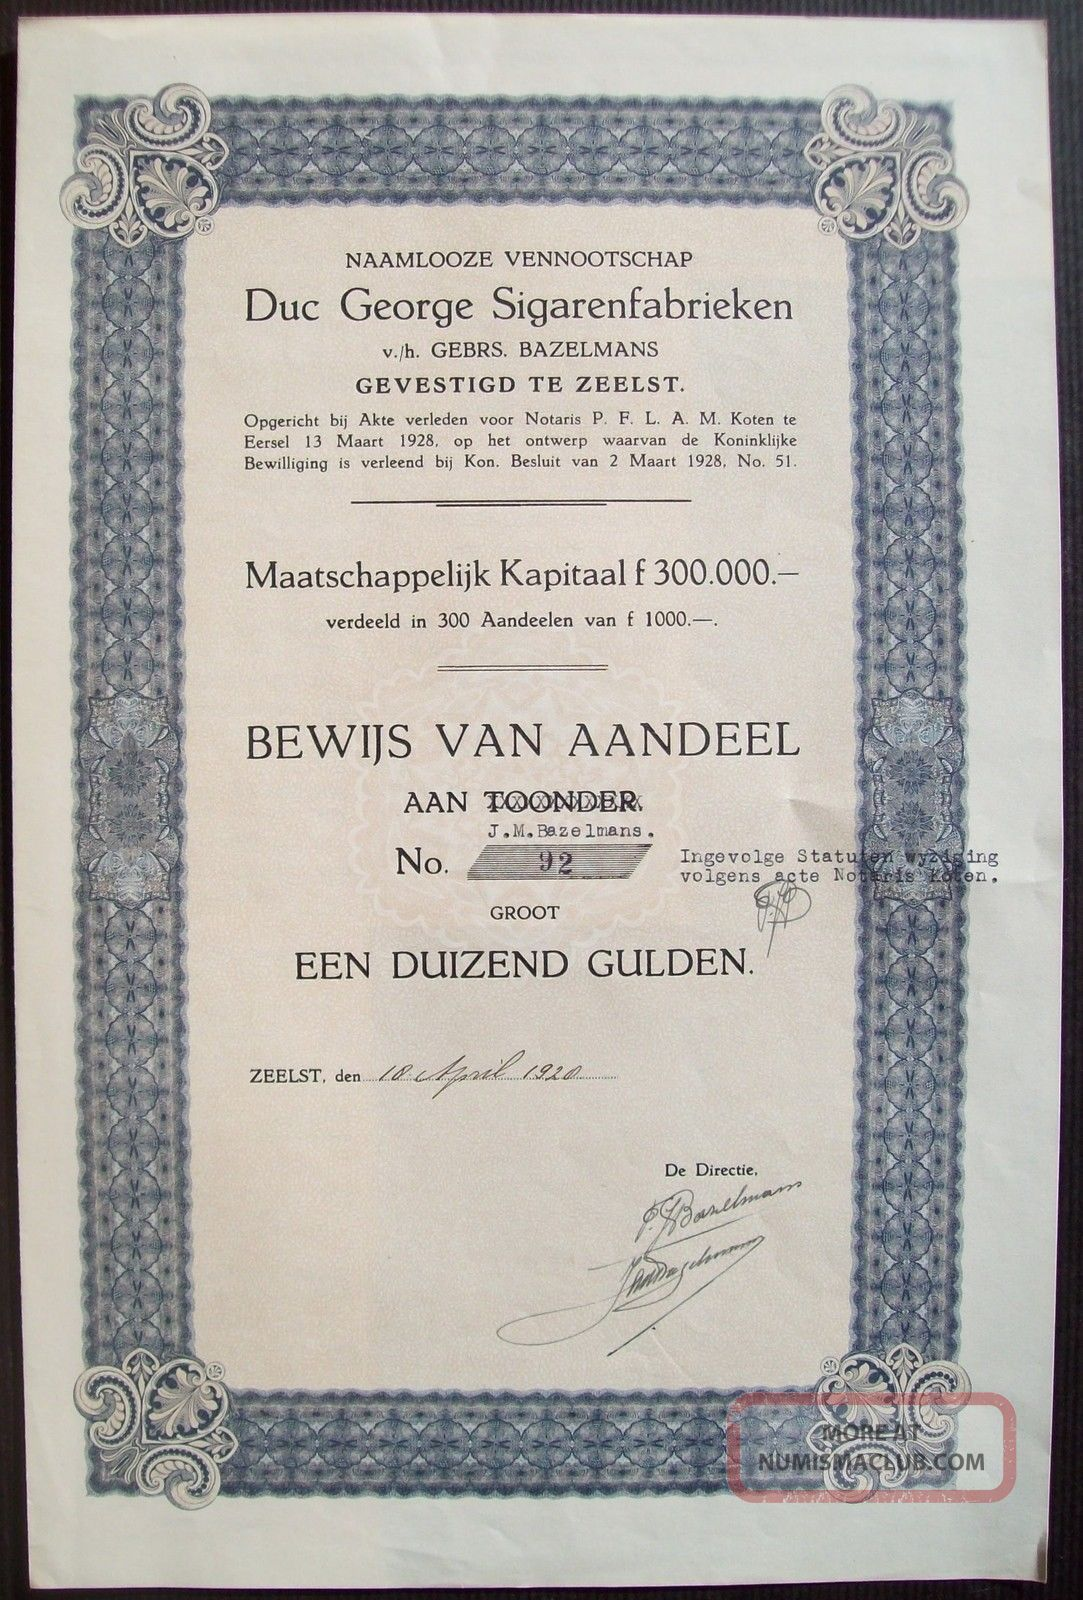 Netherlands 1920 Bond Duc George Sigarenfabrieken Zeelst Tobacco. .  B1540 World photo